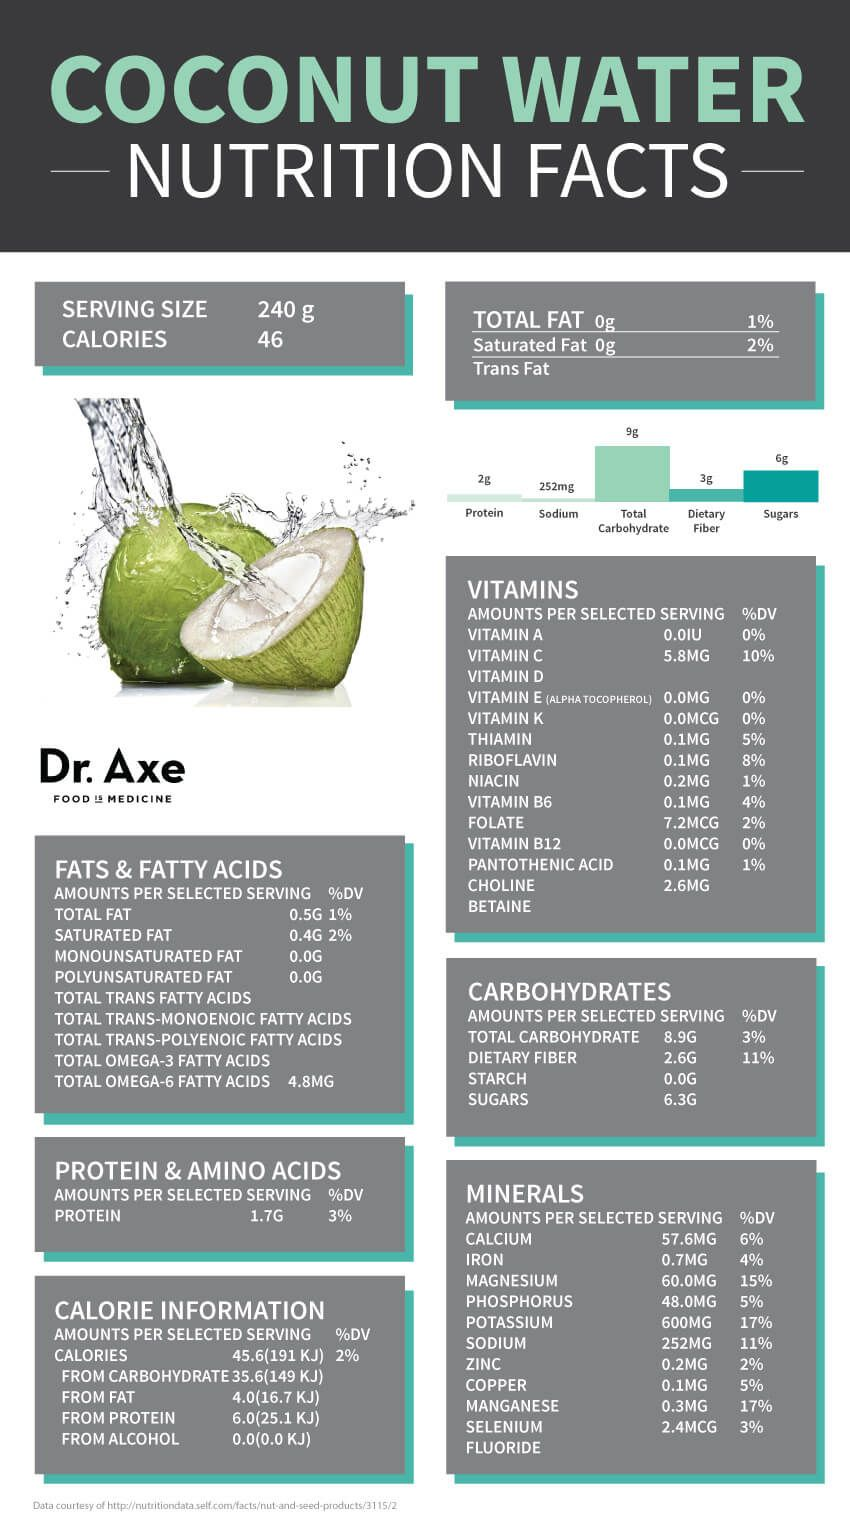 coconut water: is it good for you? 5 major benefits